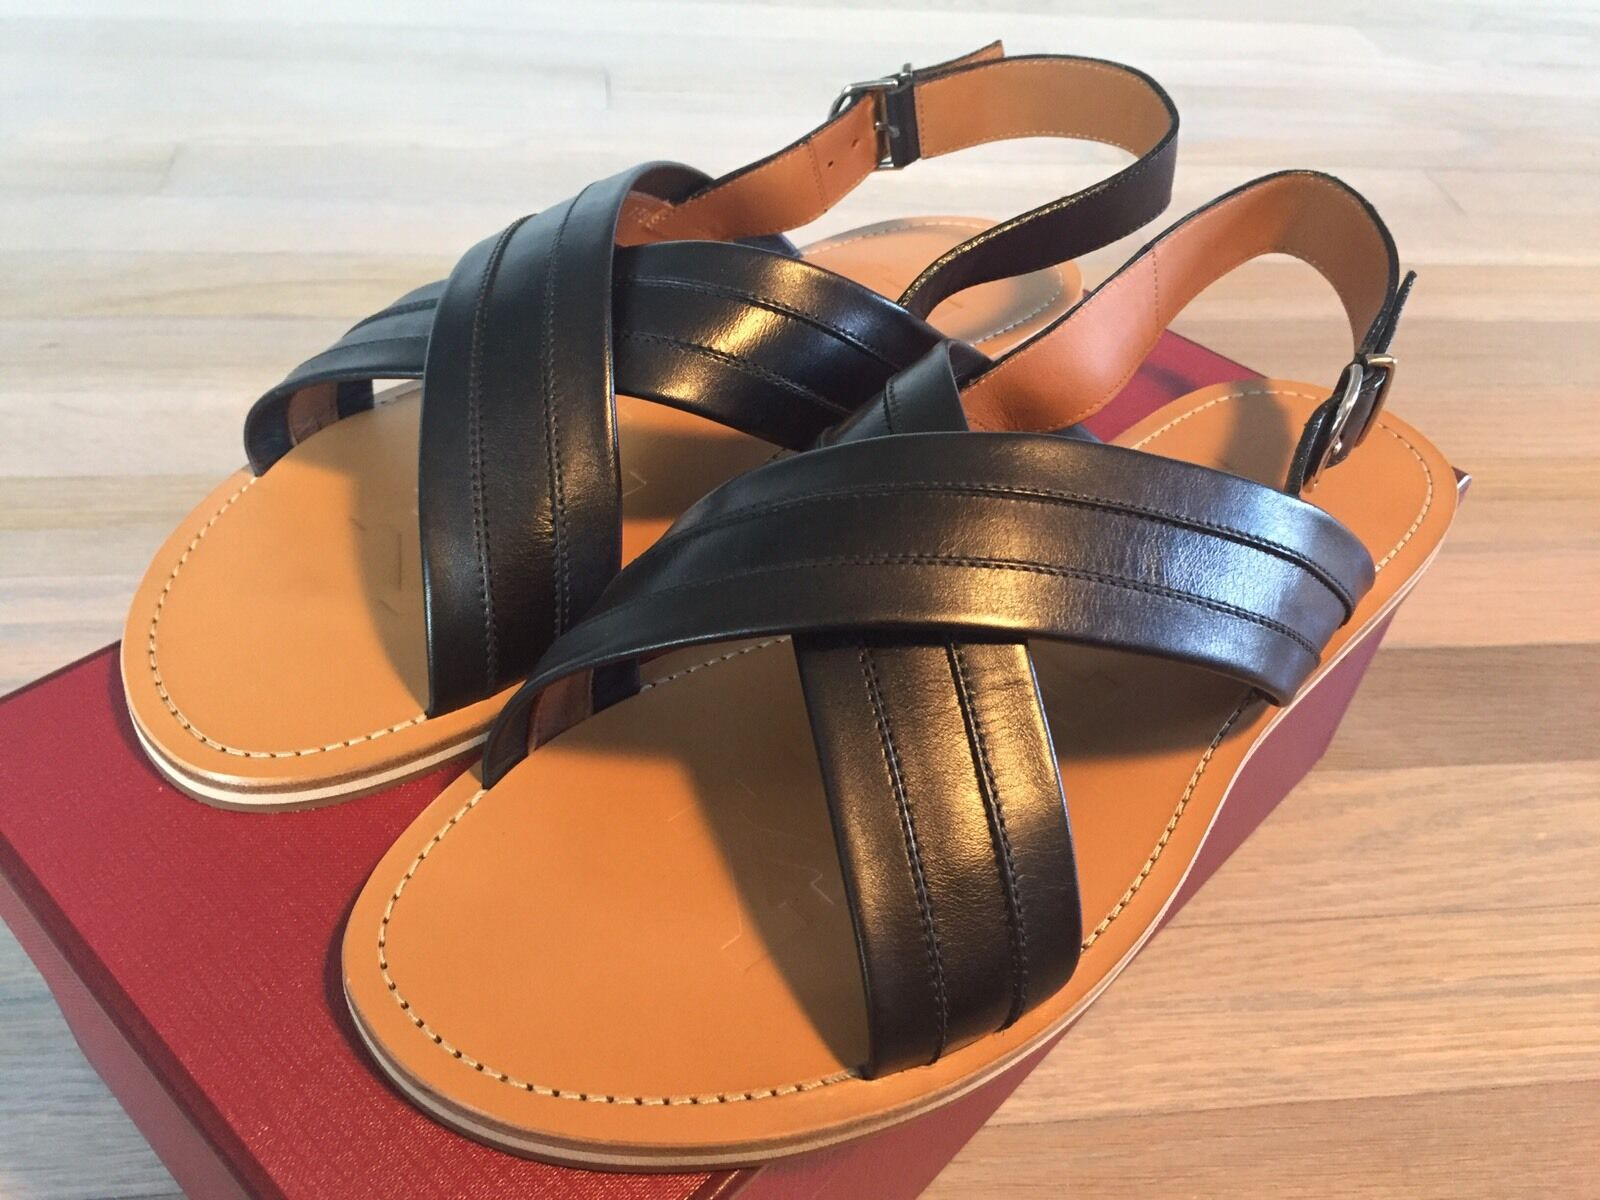 525  Bally Black and Tan Amadis Leather Sandals size US 11 Made in